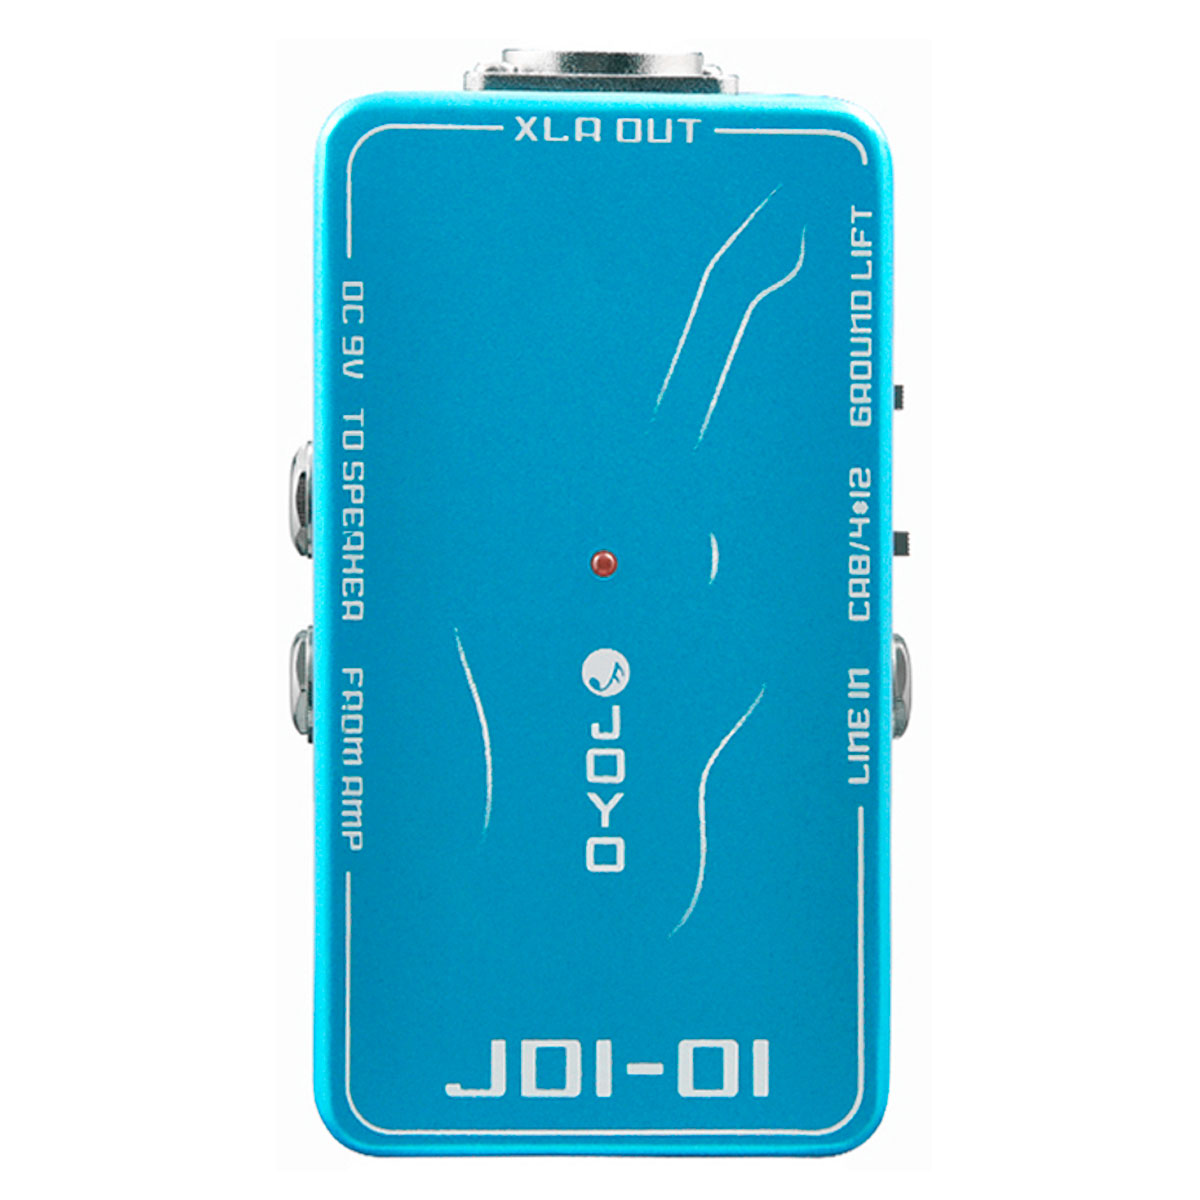 JDI01 - Direct Box Passivo JDI 01 - JOYO